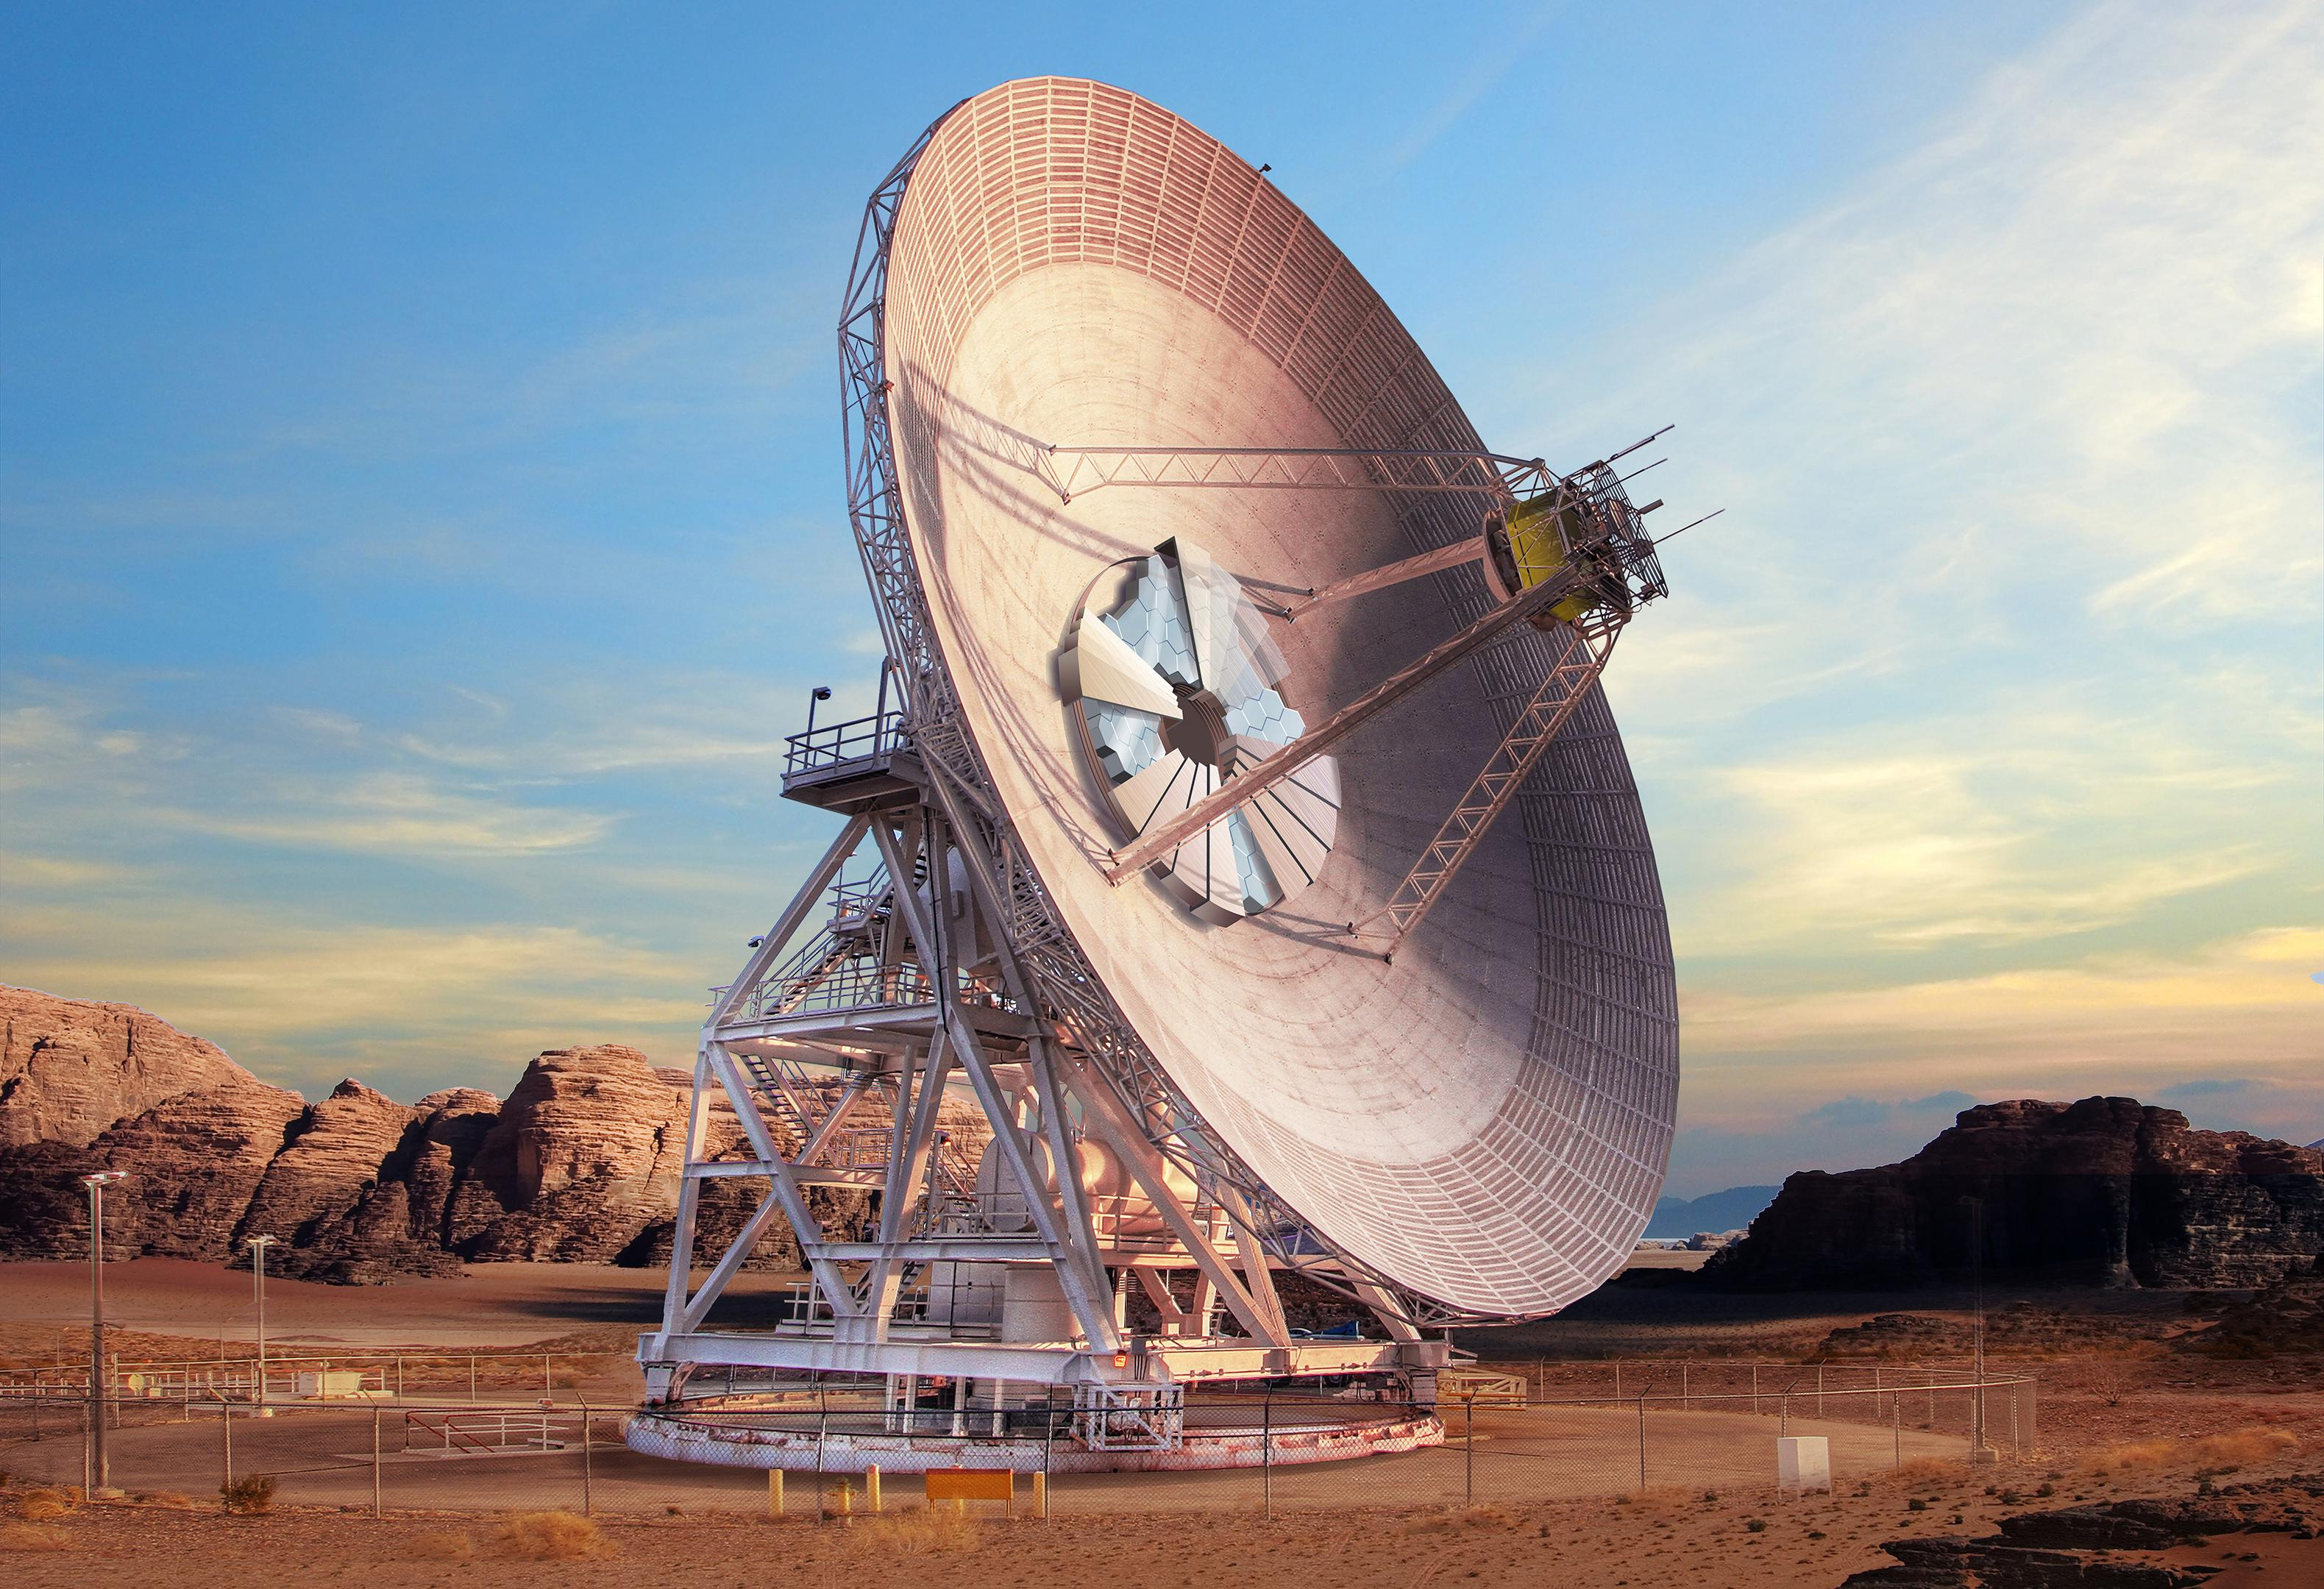 A giant antenna dish is shown in a desert landscape as the sun is setting.